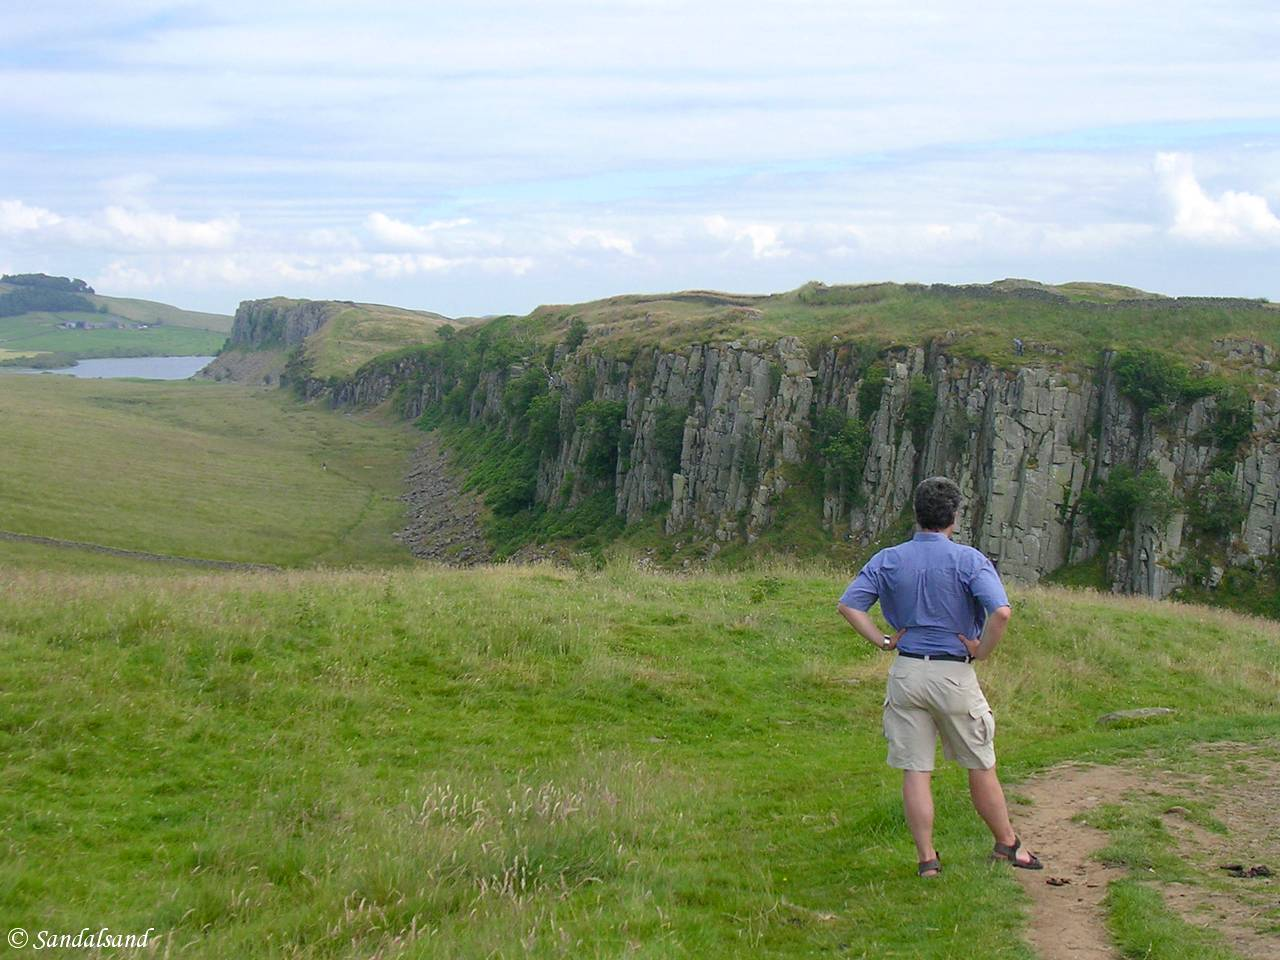 England - Hadrian's Wall - Steel Rigg - 2005 - Picture of Bård Humberset, the author of Sandalsand